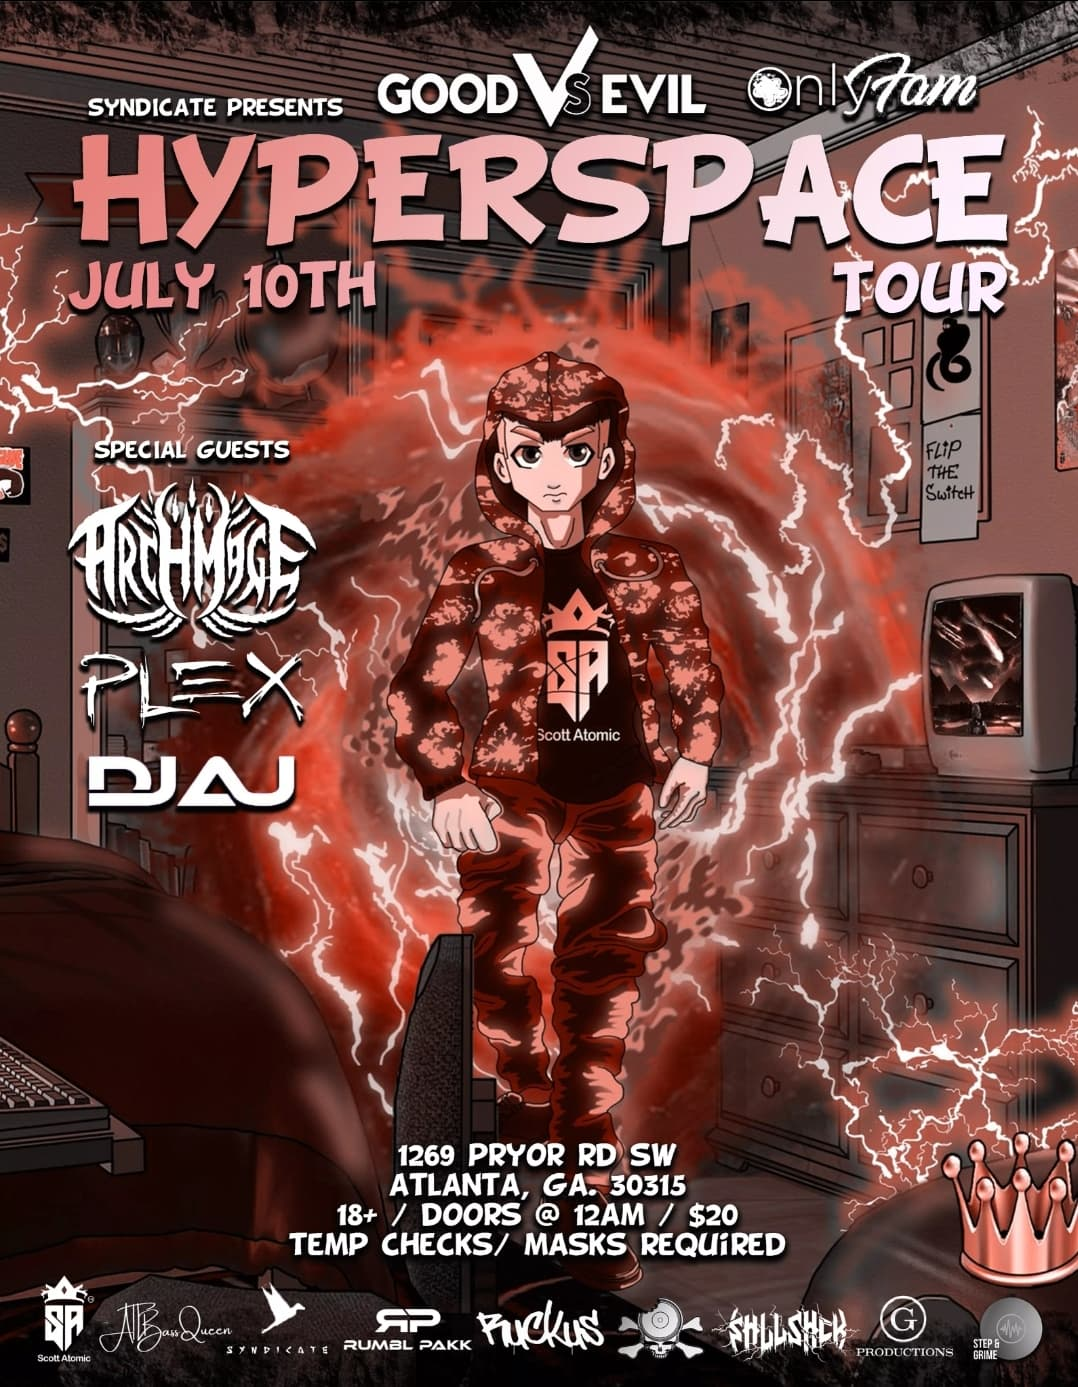 SYNDICATE PRESENTS